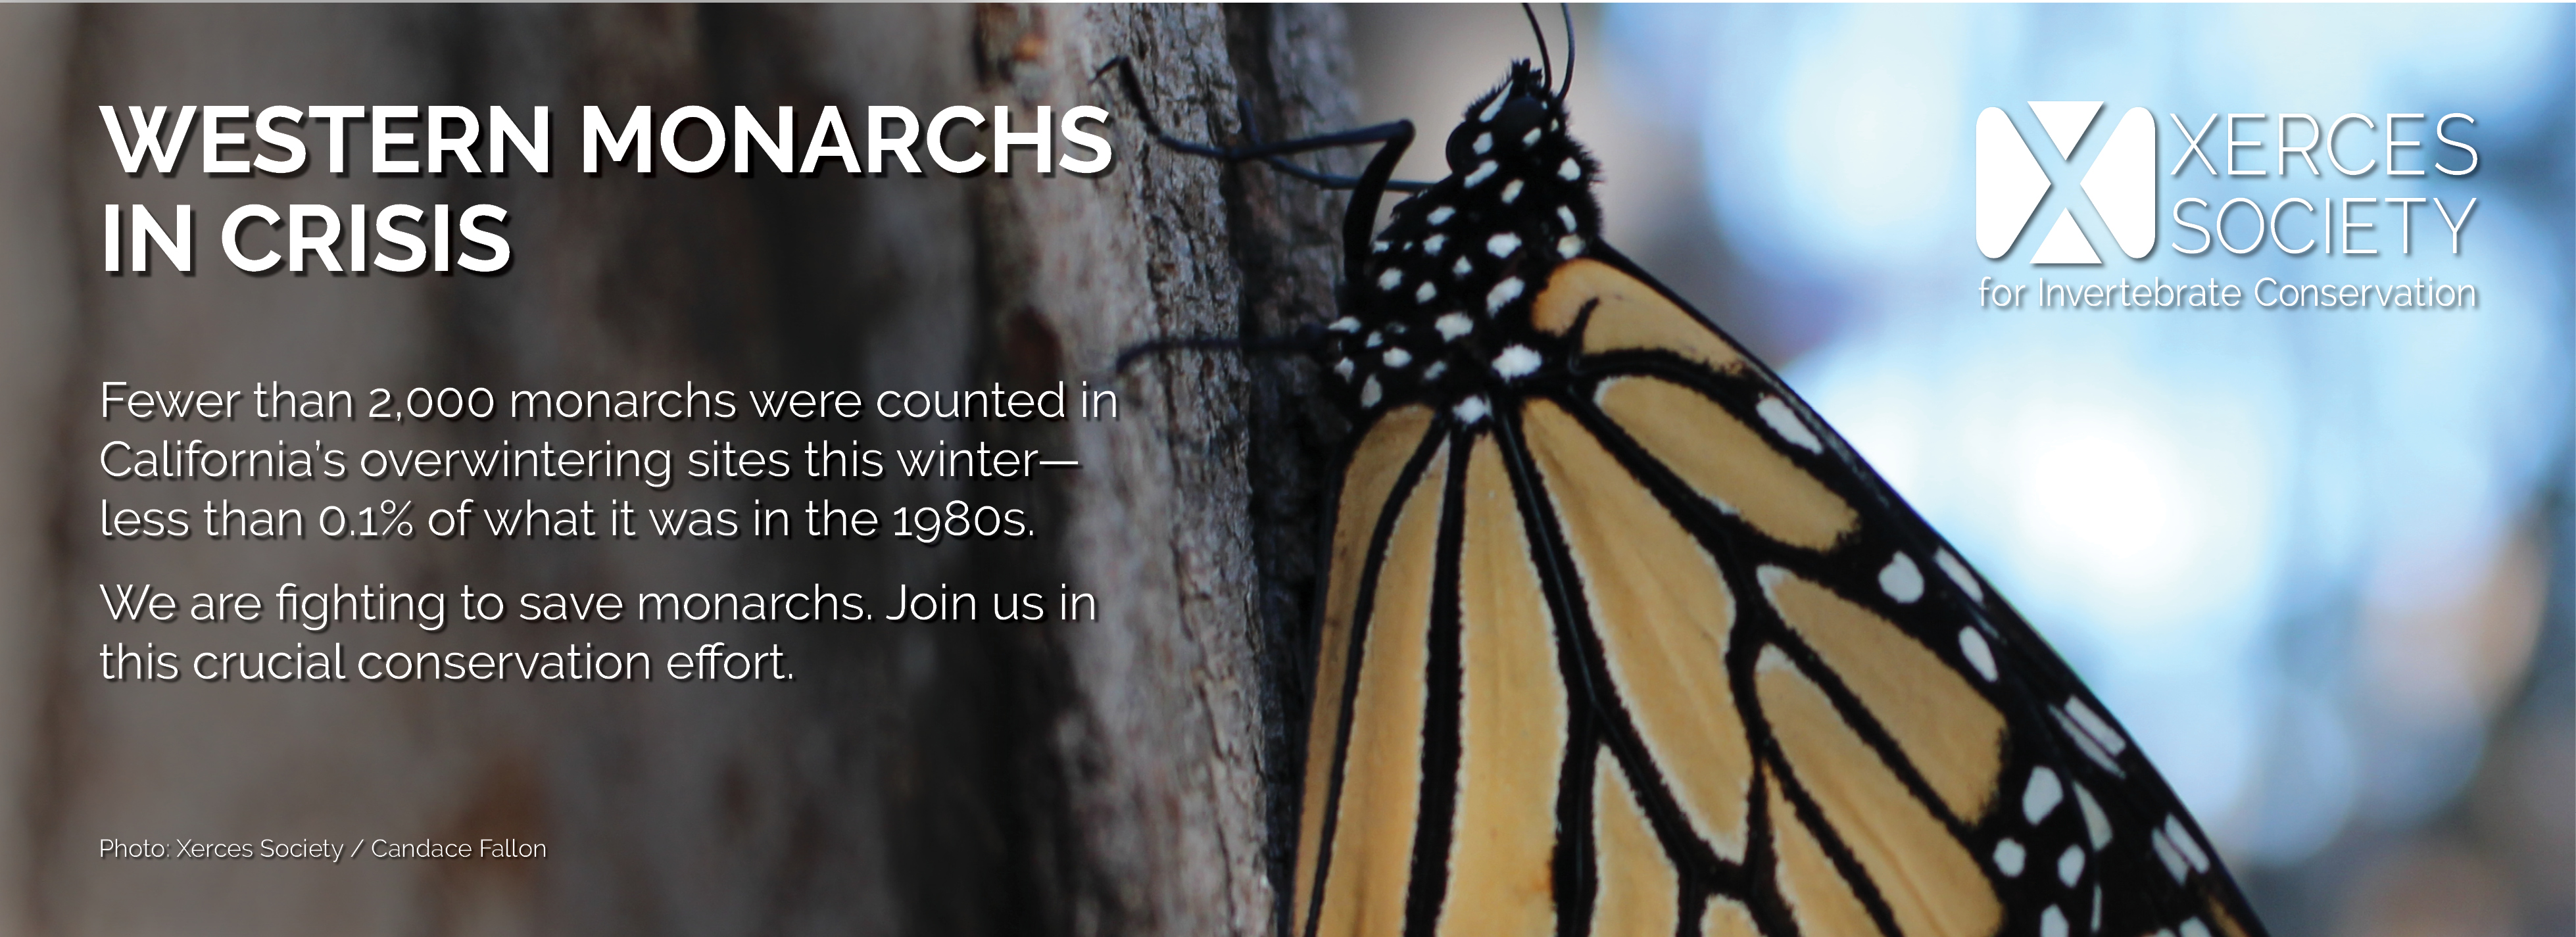 This banner, featuring a monarch clutching a tree trunk in a dimly-lit scene, says: Western Monarchs in Crisis: The western monarch population is now less than 0.01% of what it was in the 1980s. We are fighting to save them. Join us in this crucial conservation effort.